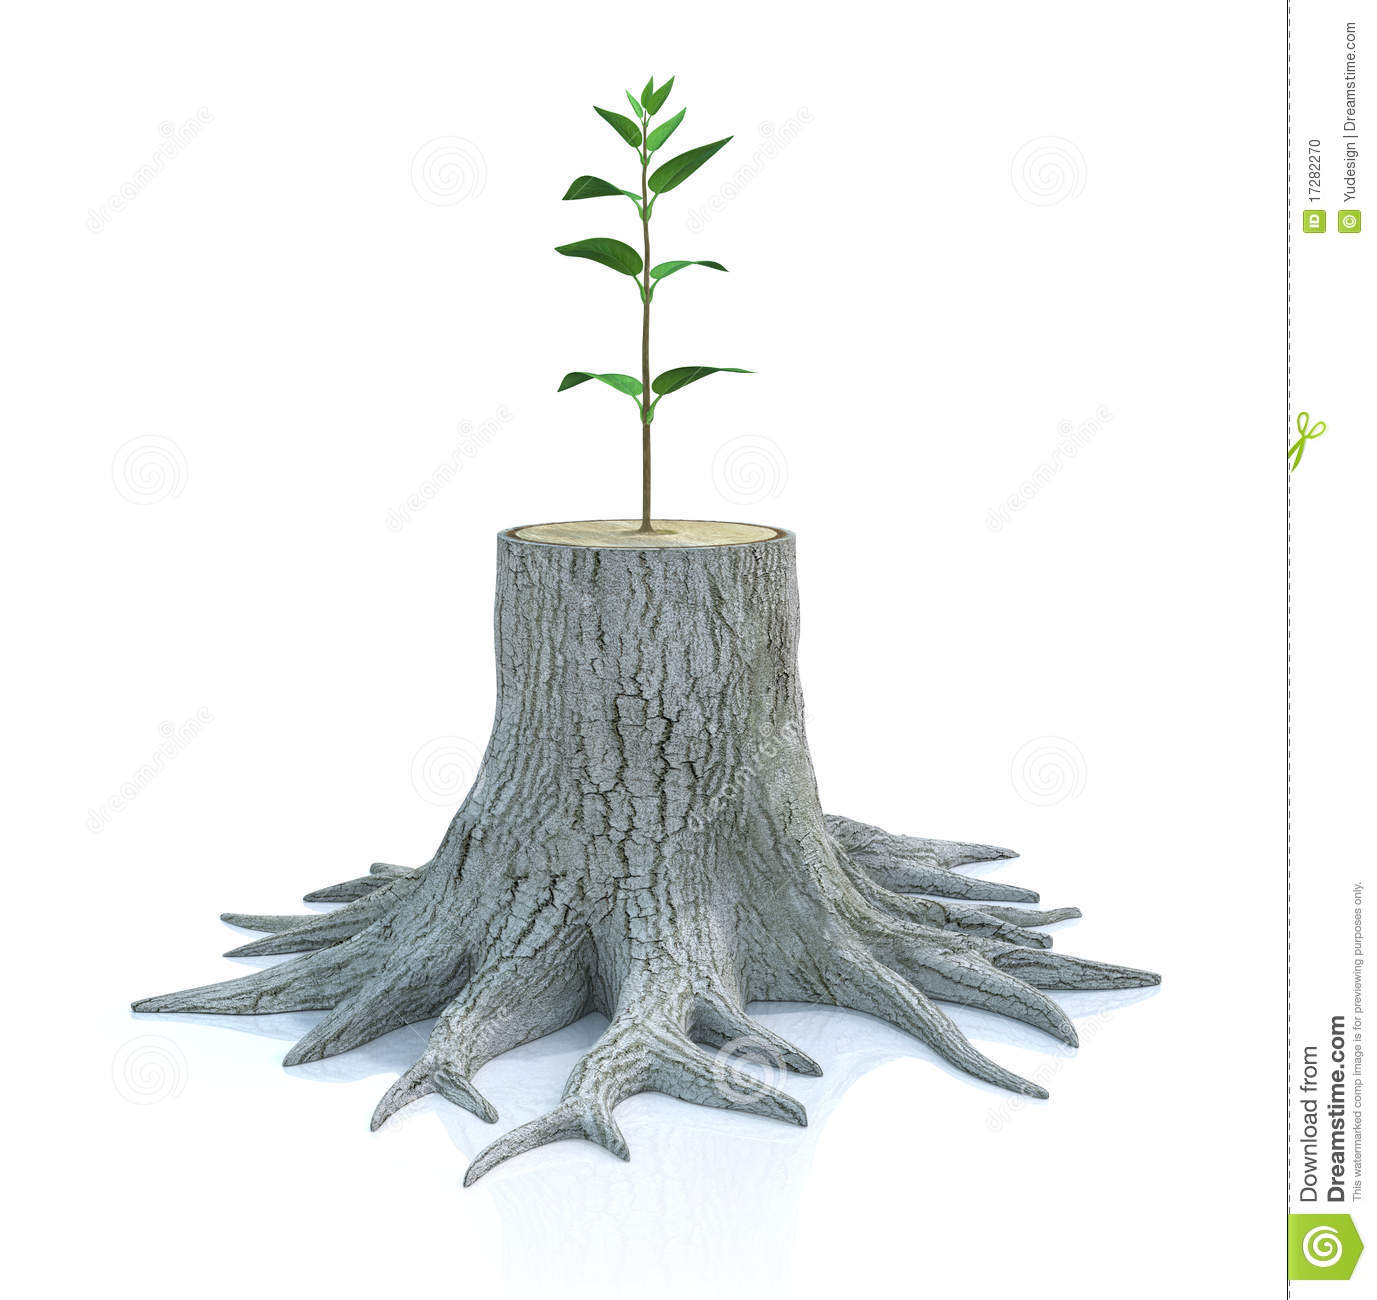 Young Tree Seedling Grow From Old Stump Stock Photo - Image: 17282270